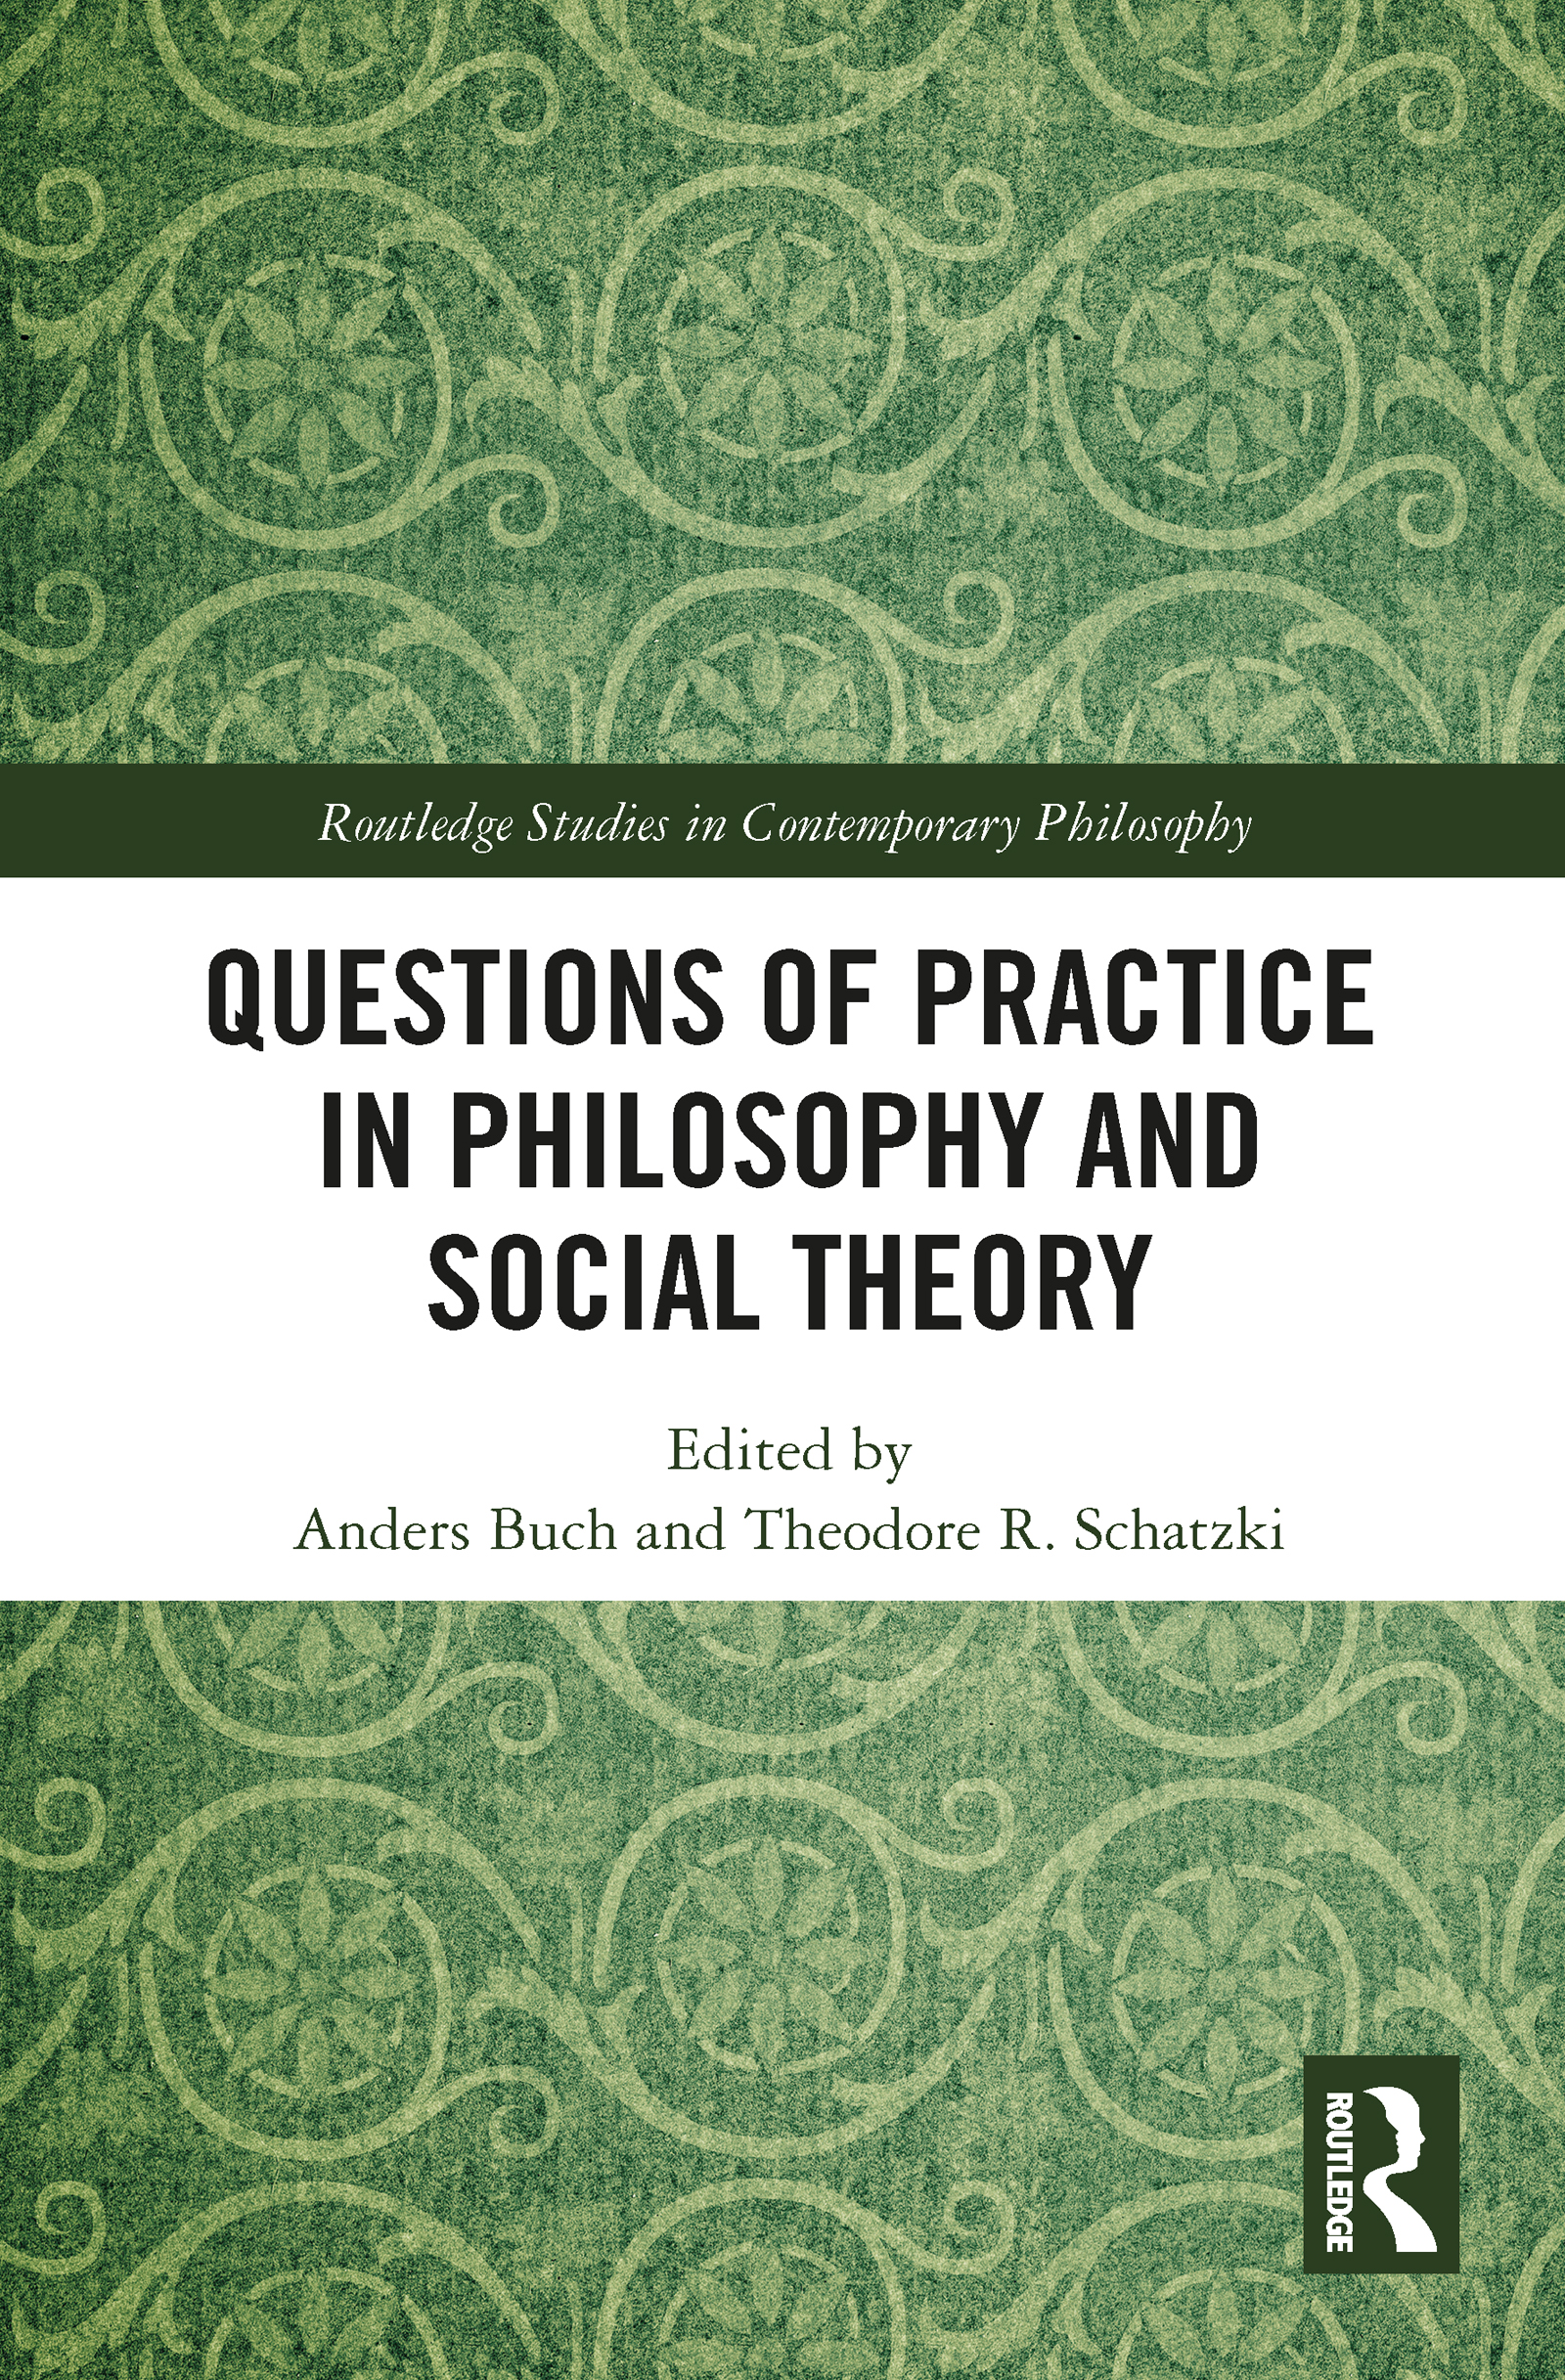 Questions of Practice in Philosophy and Social Theory